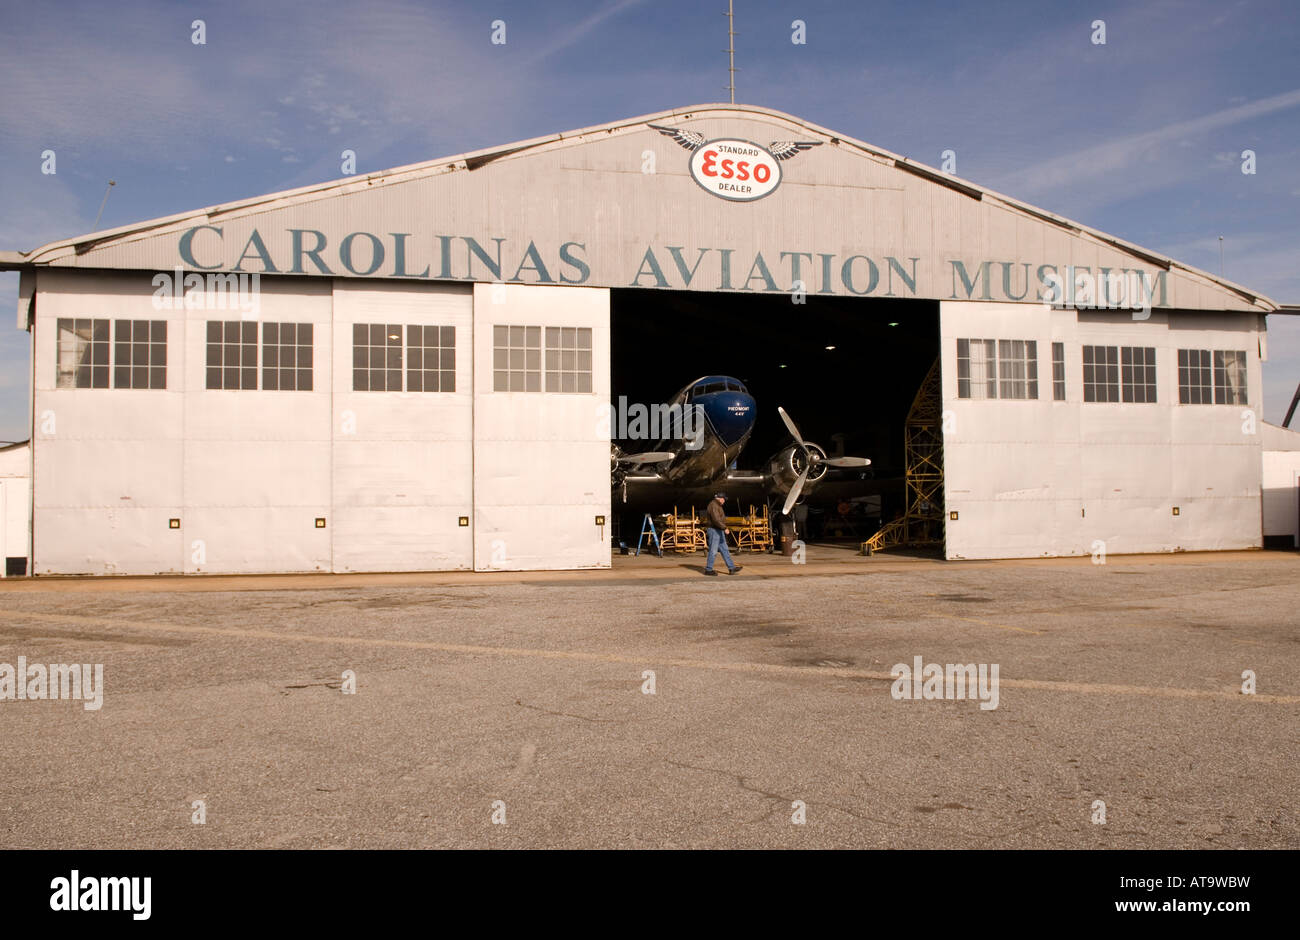 Carolinas Aviation Museum in Charlotte NC USA - Stock Image